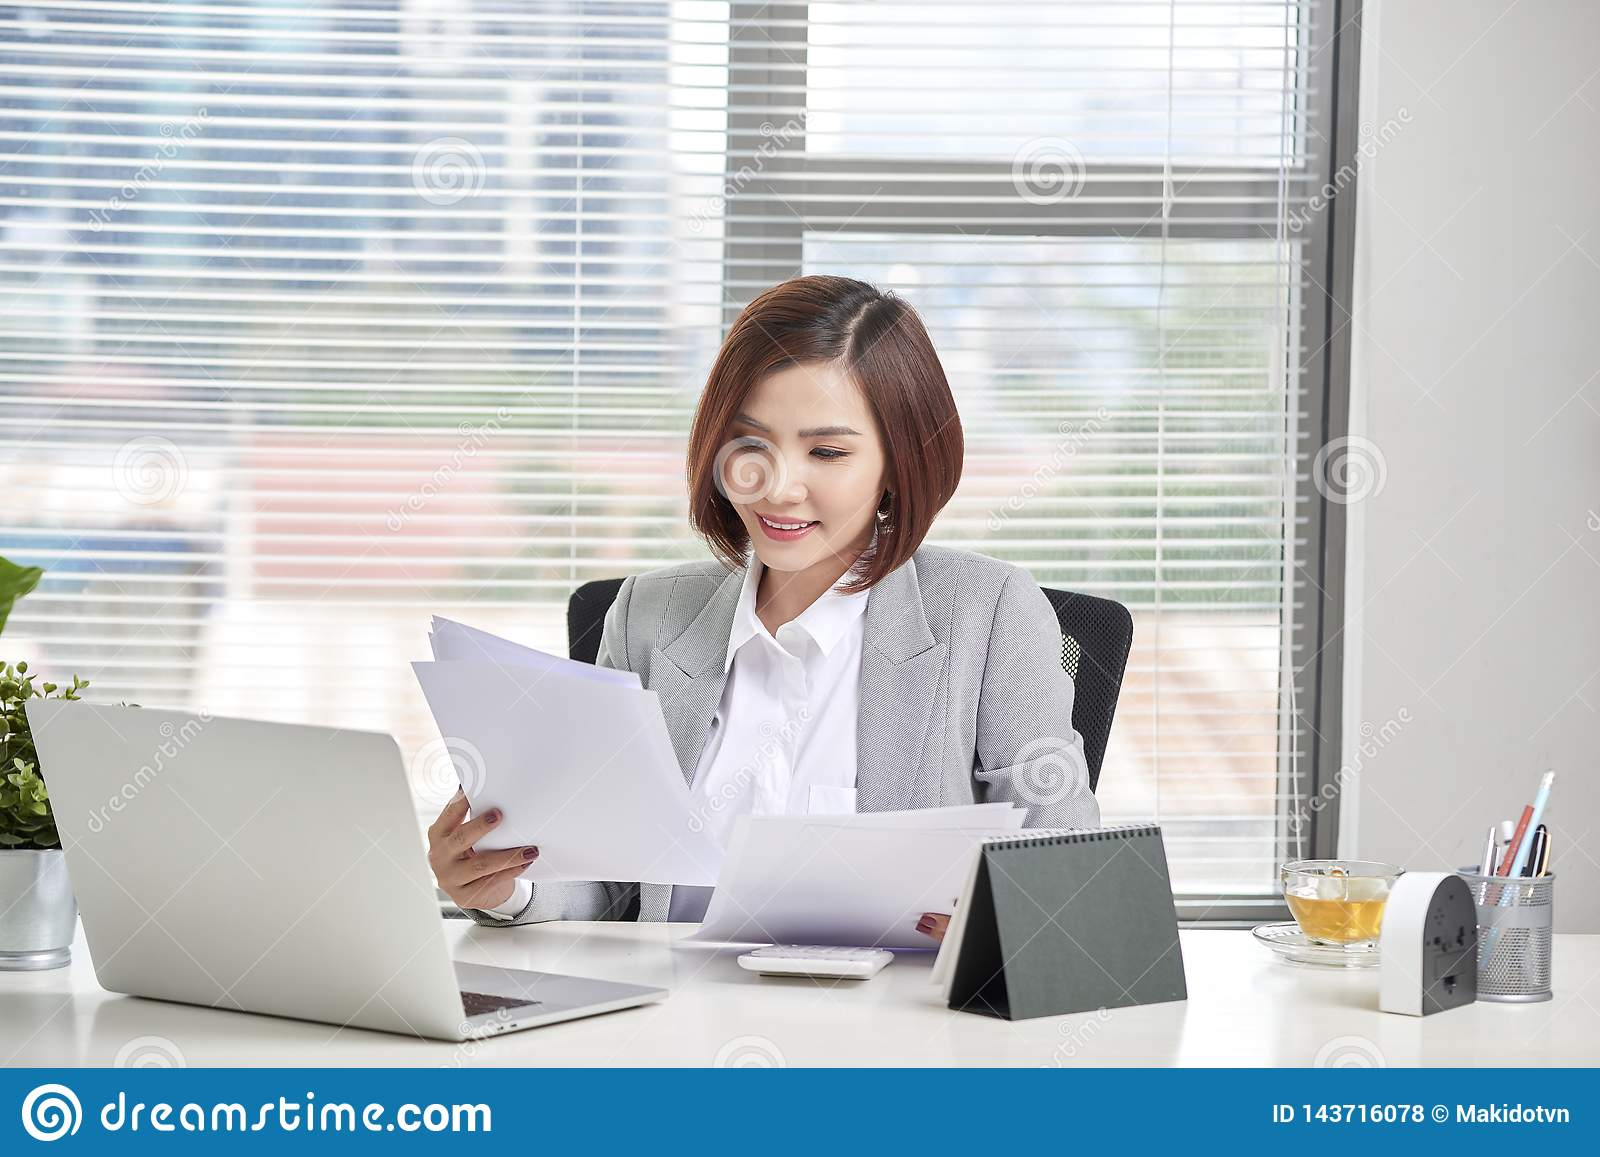 Happy asian woman working in office. Female going through some paperwork at work place